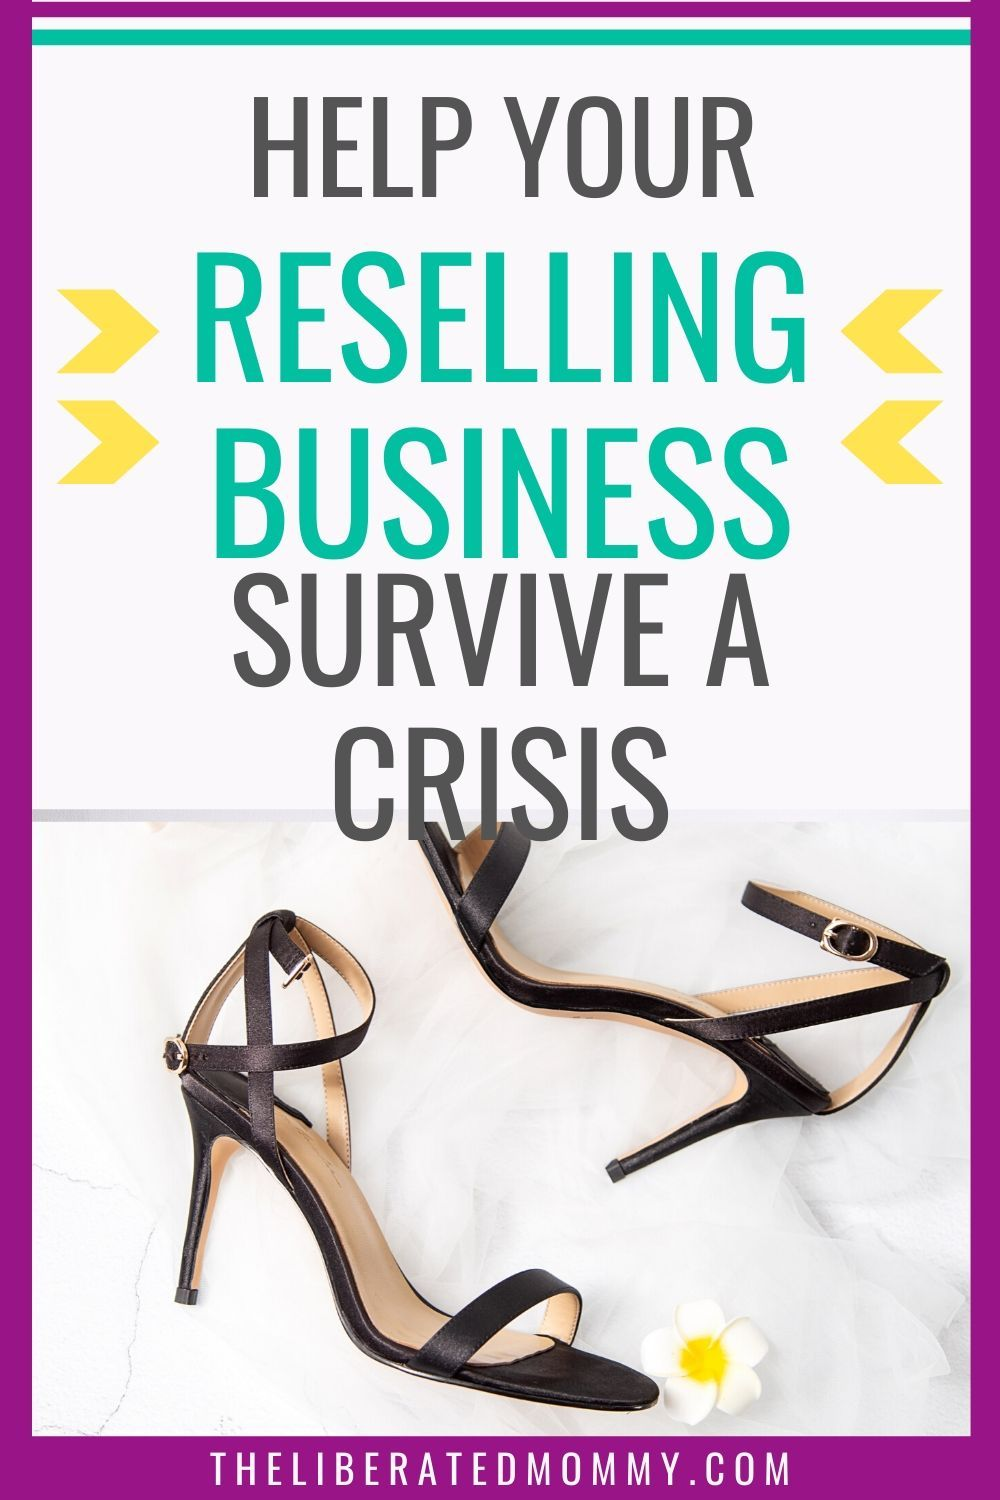 Survival Tips for Your Reselling Business During a Crisis